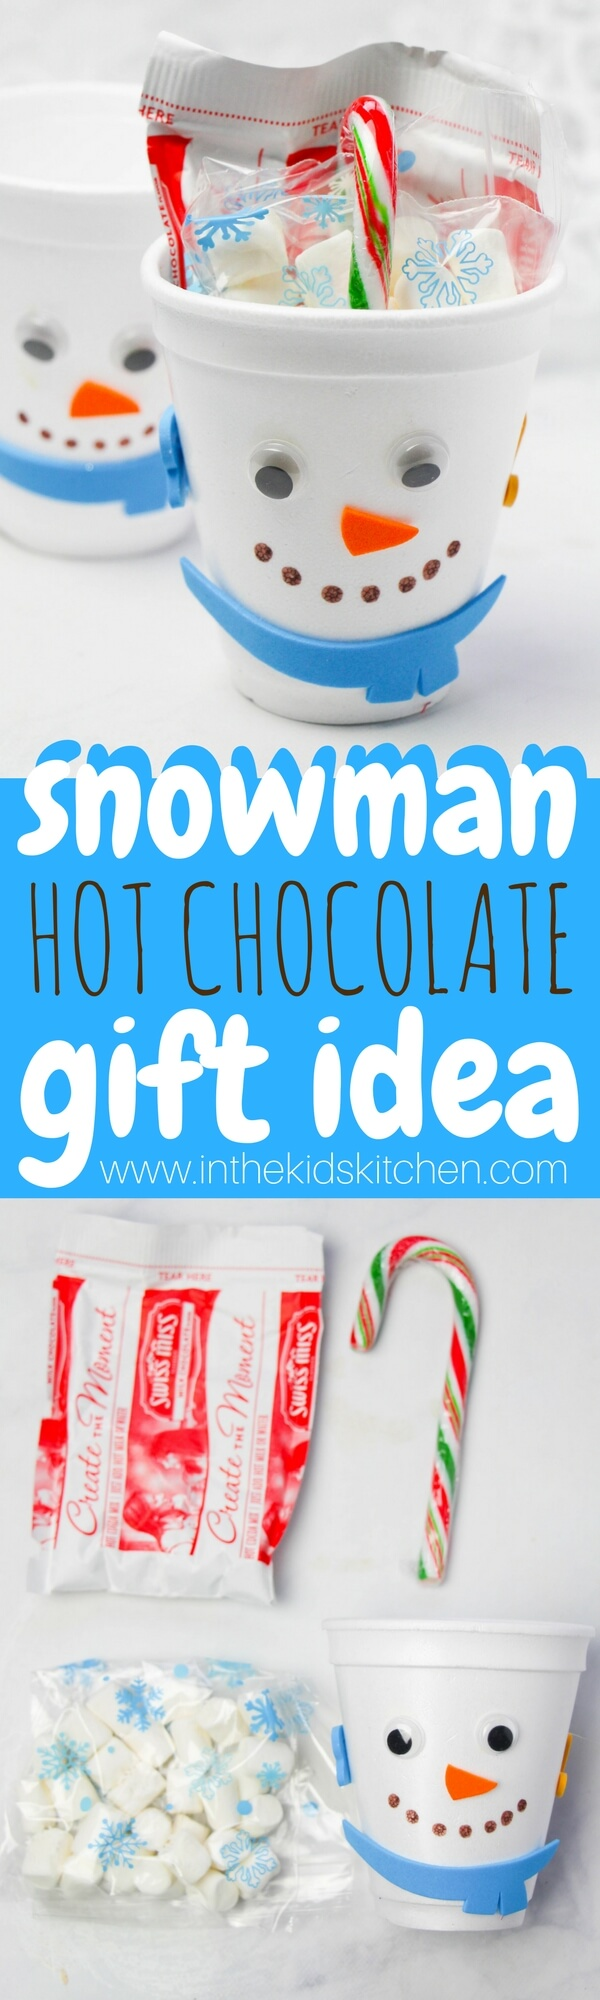 A cute classroom gift idea for Christmas, this Snowman Hot Chocolate Gift Set is one kids can make, and it's thrifty too!